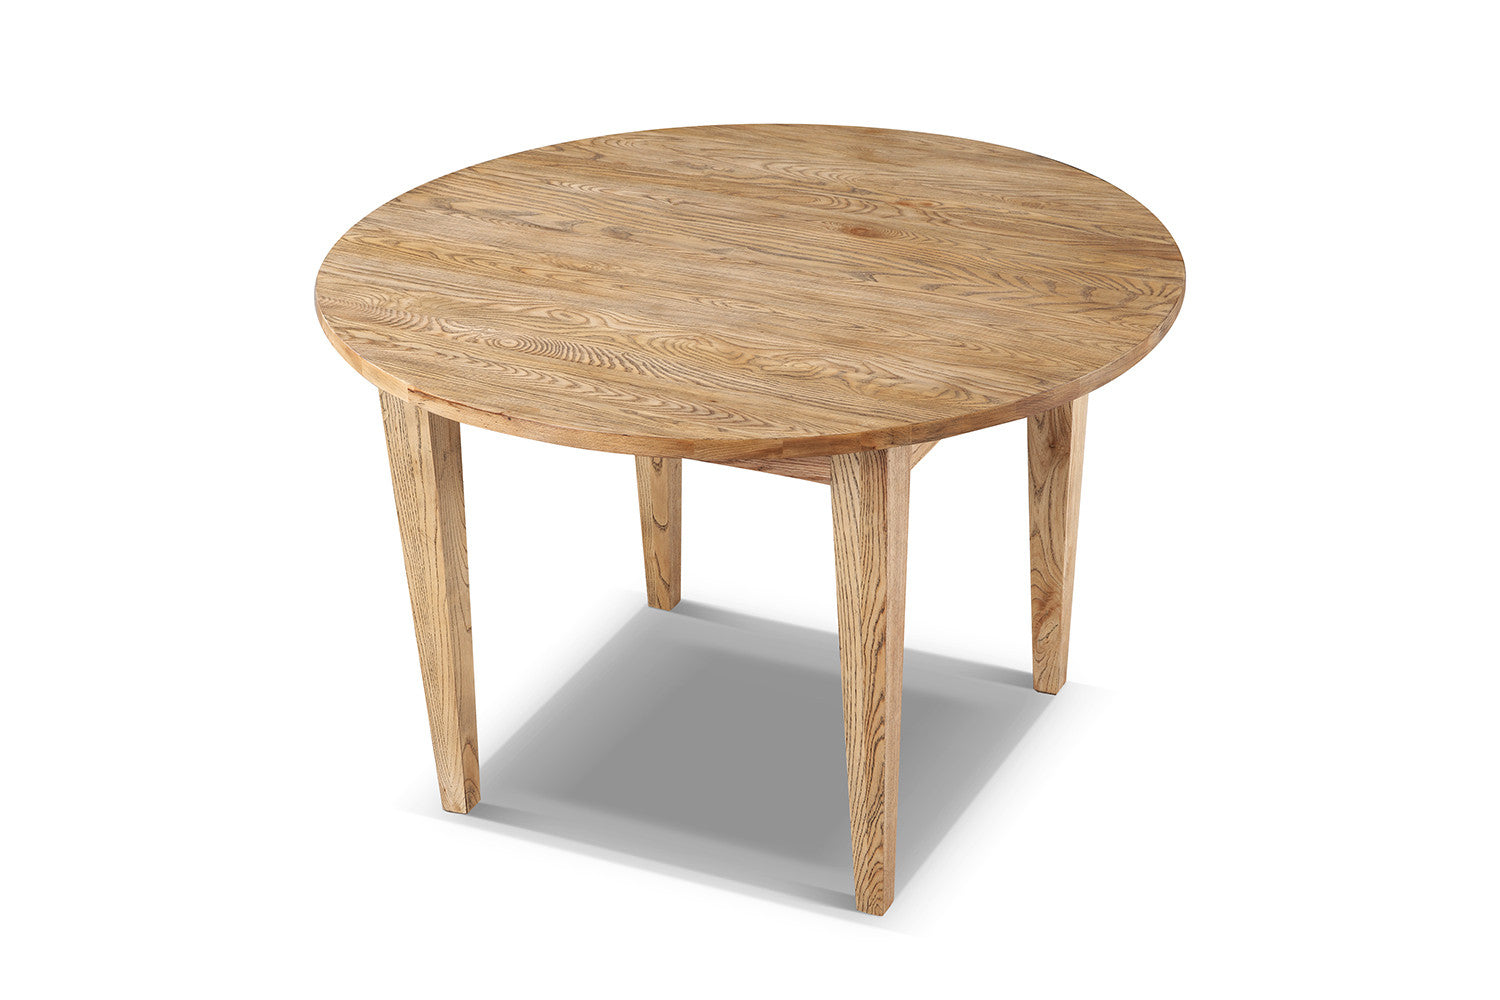 Table de cuisine ronde en bois rose moore - Dimension table ronde ...